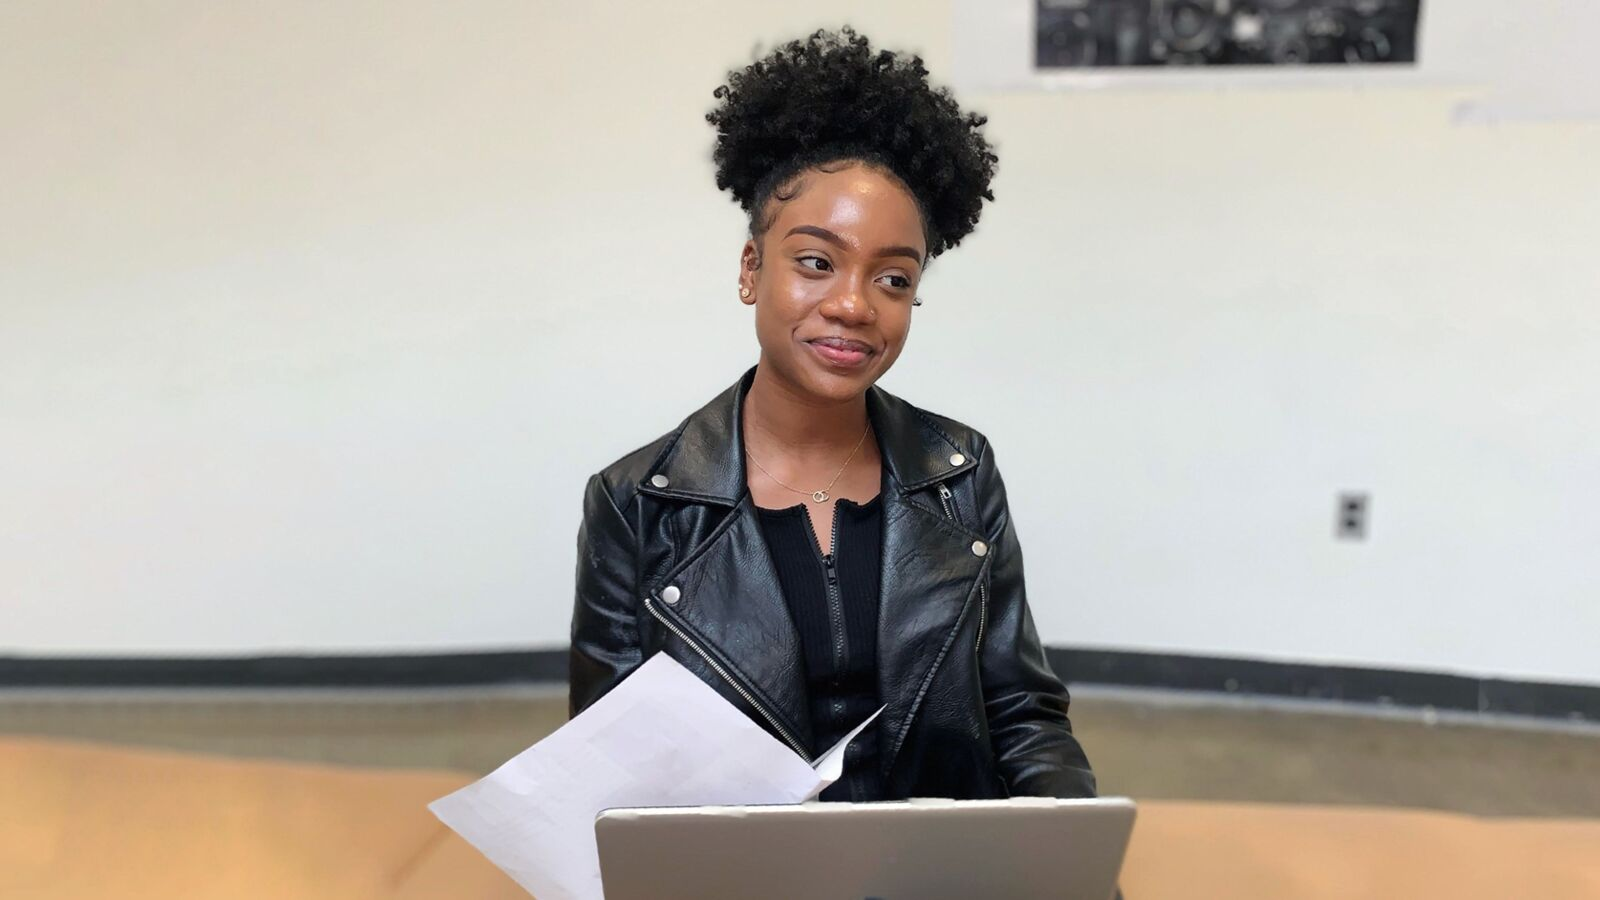 An OppNet student participates in the organization's college and career success programs. The organization recently launched a new initiative called UninterruptED to provide virtual programming to students nationwide.